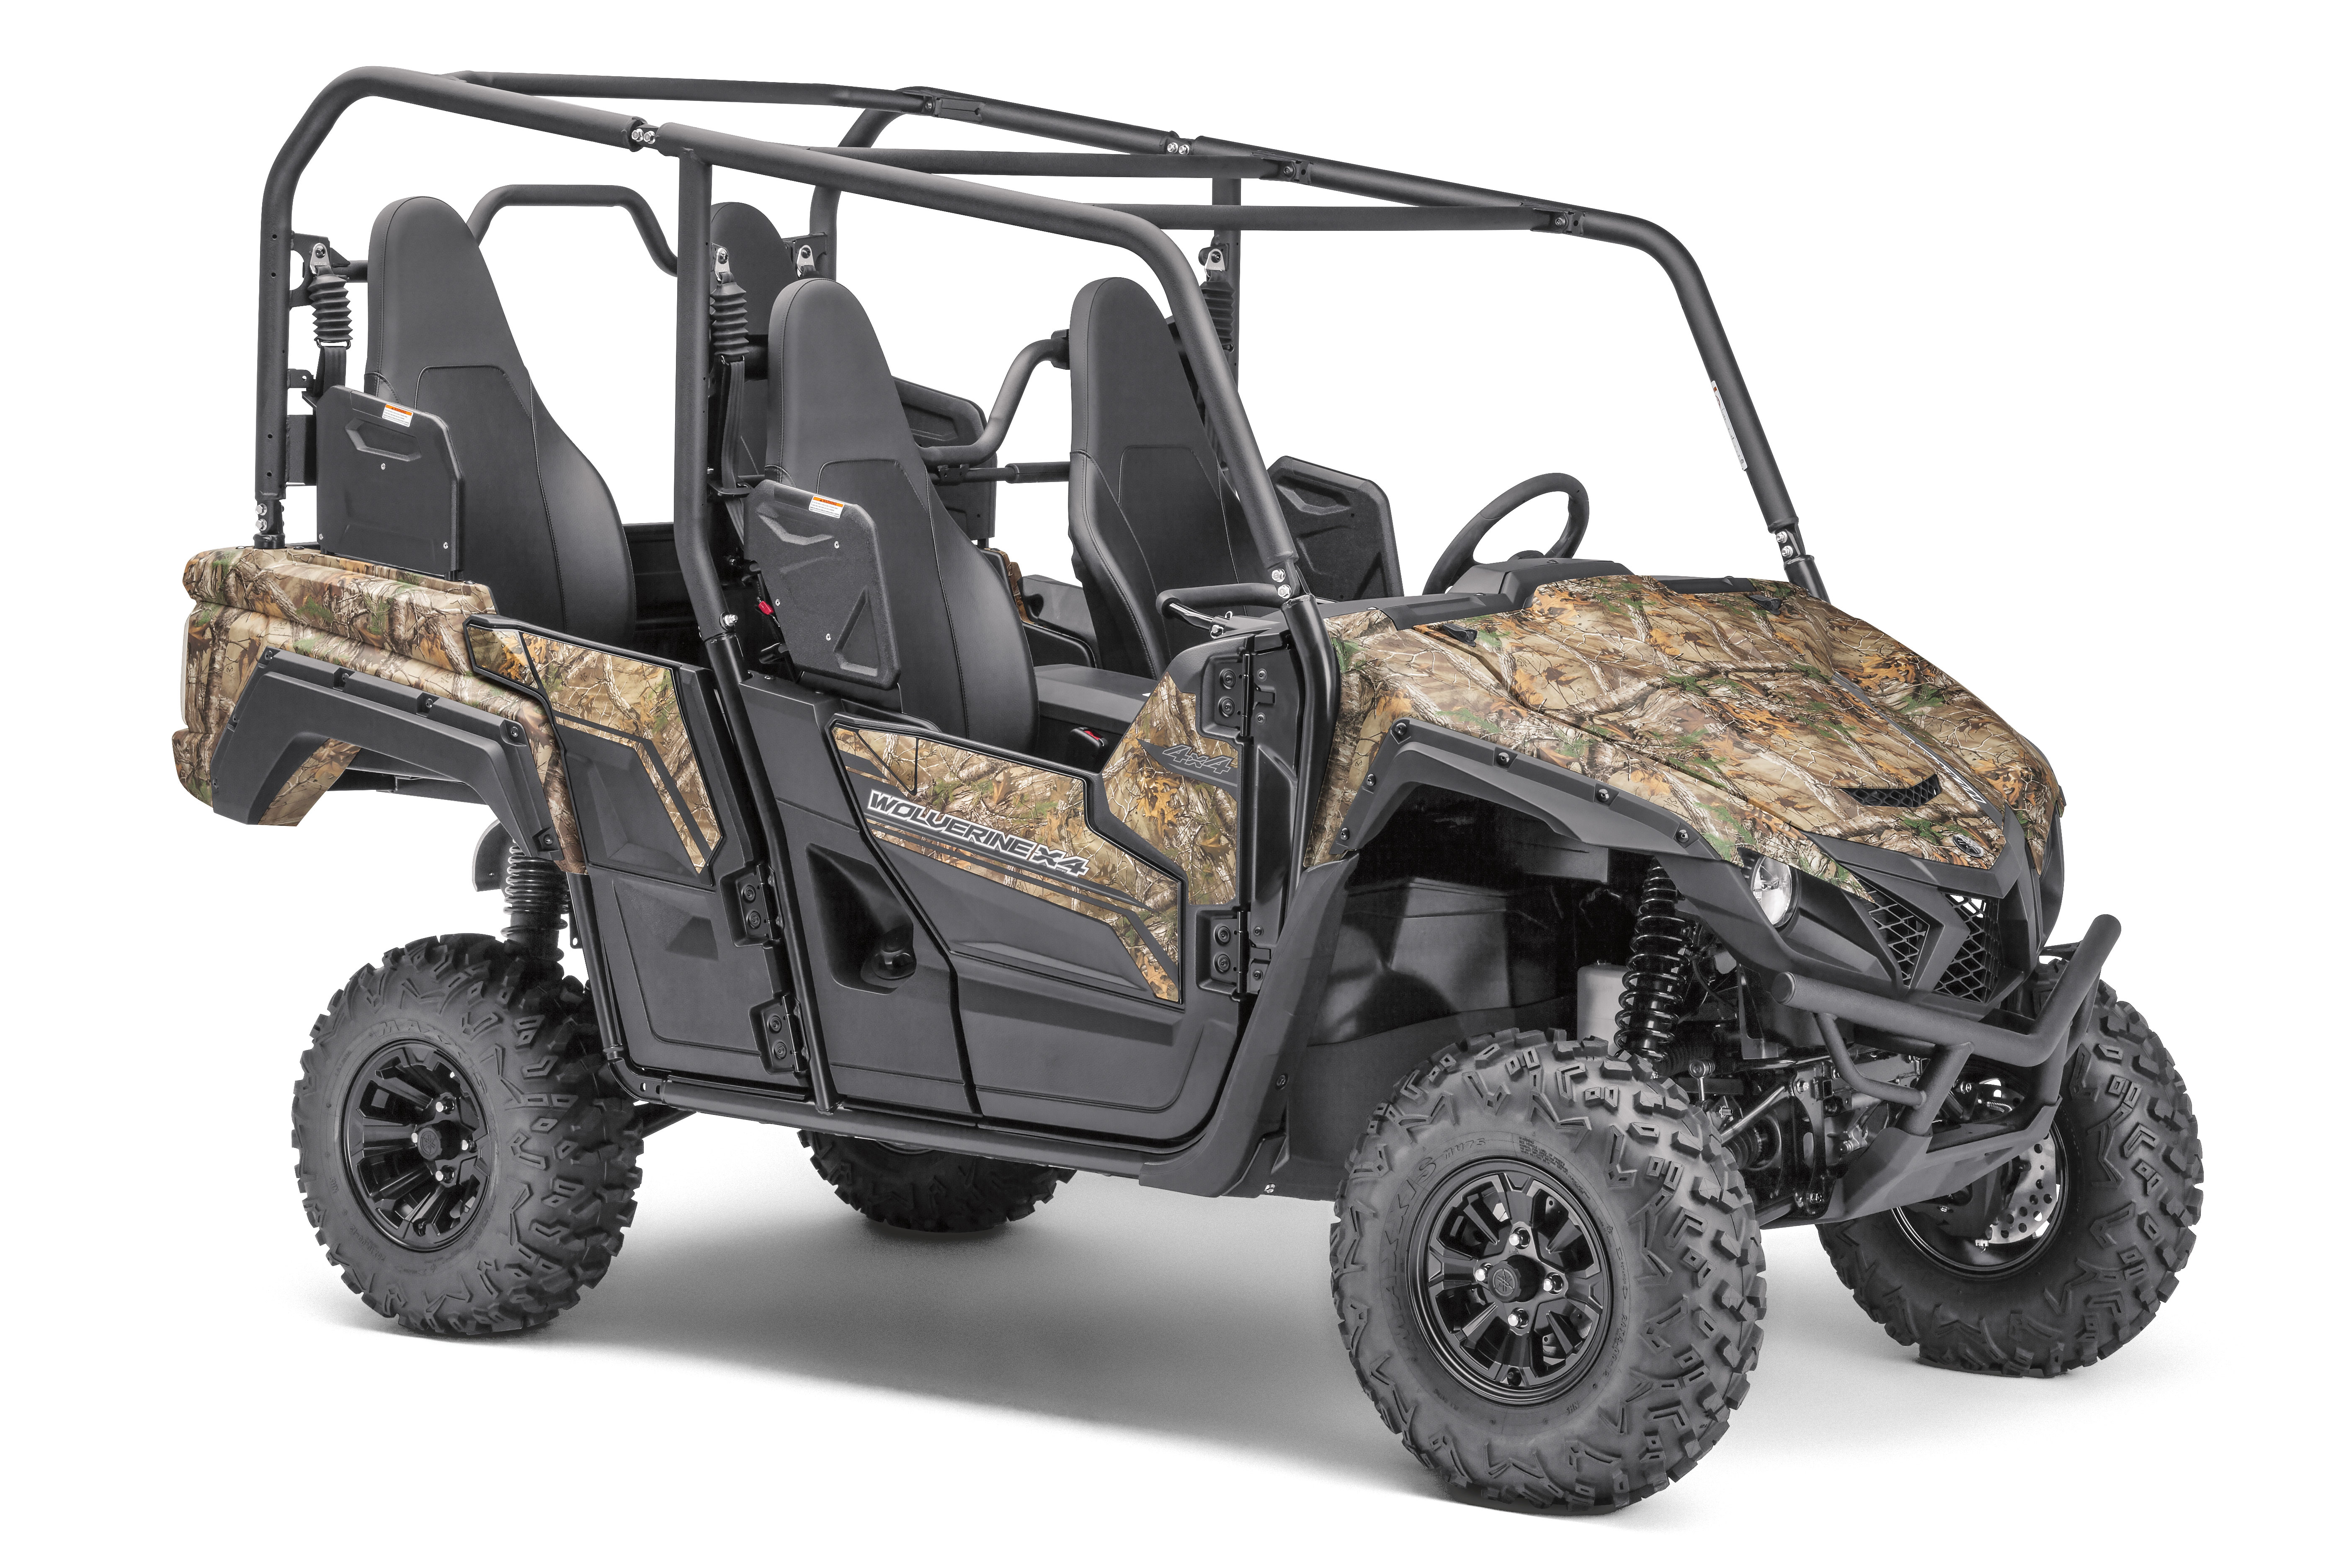 Camo New Wolverine X Realtree Xtra S Rgb on 2018 Yamaha Camo Grizzly 700